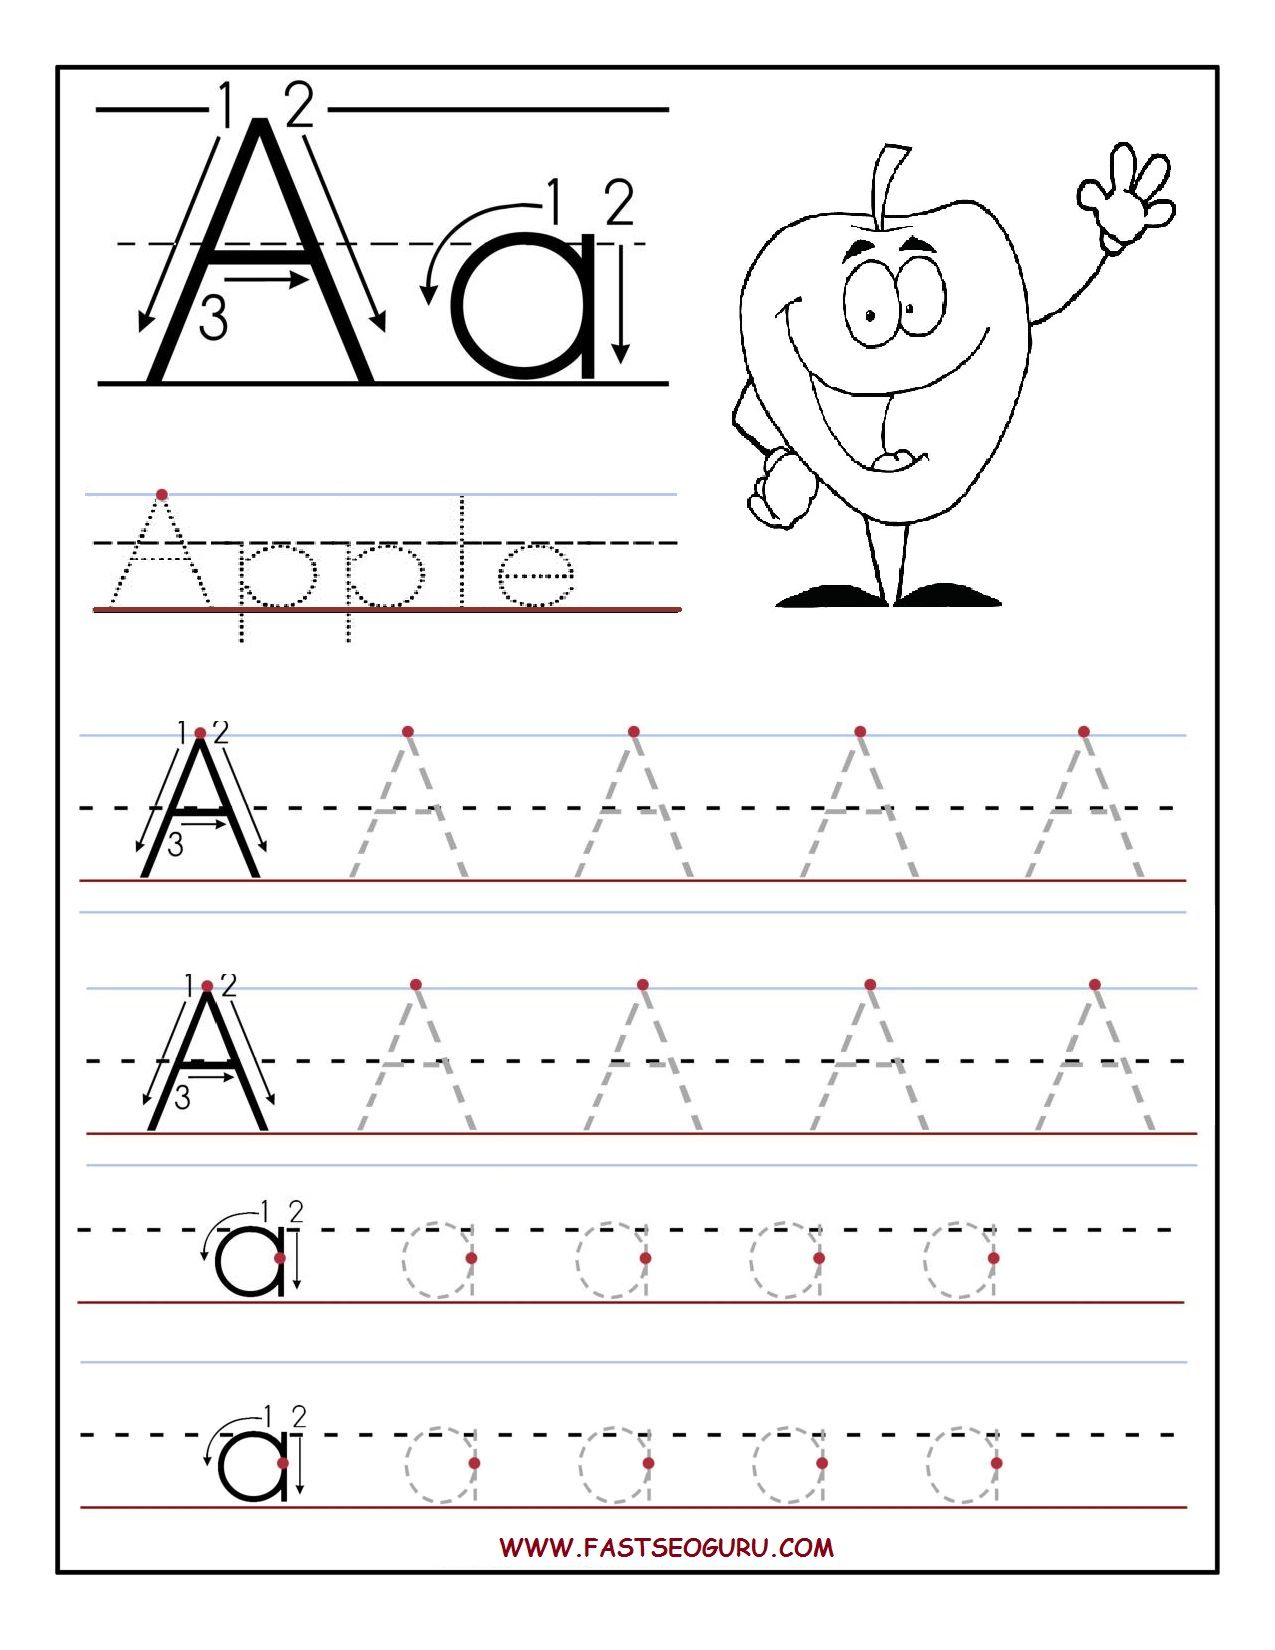 Worksheets Printable Alphabet Worksheets bfree printable letter a tracing worksheets